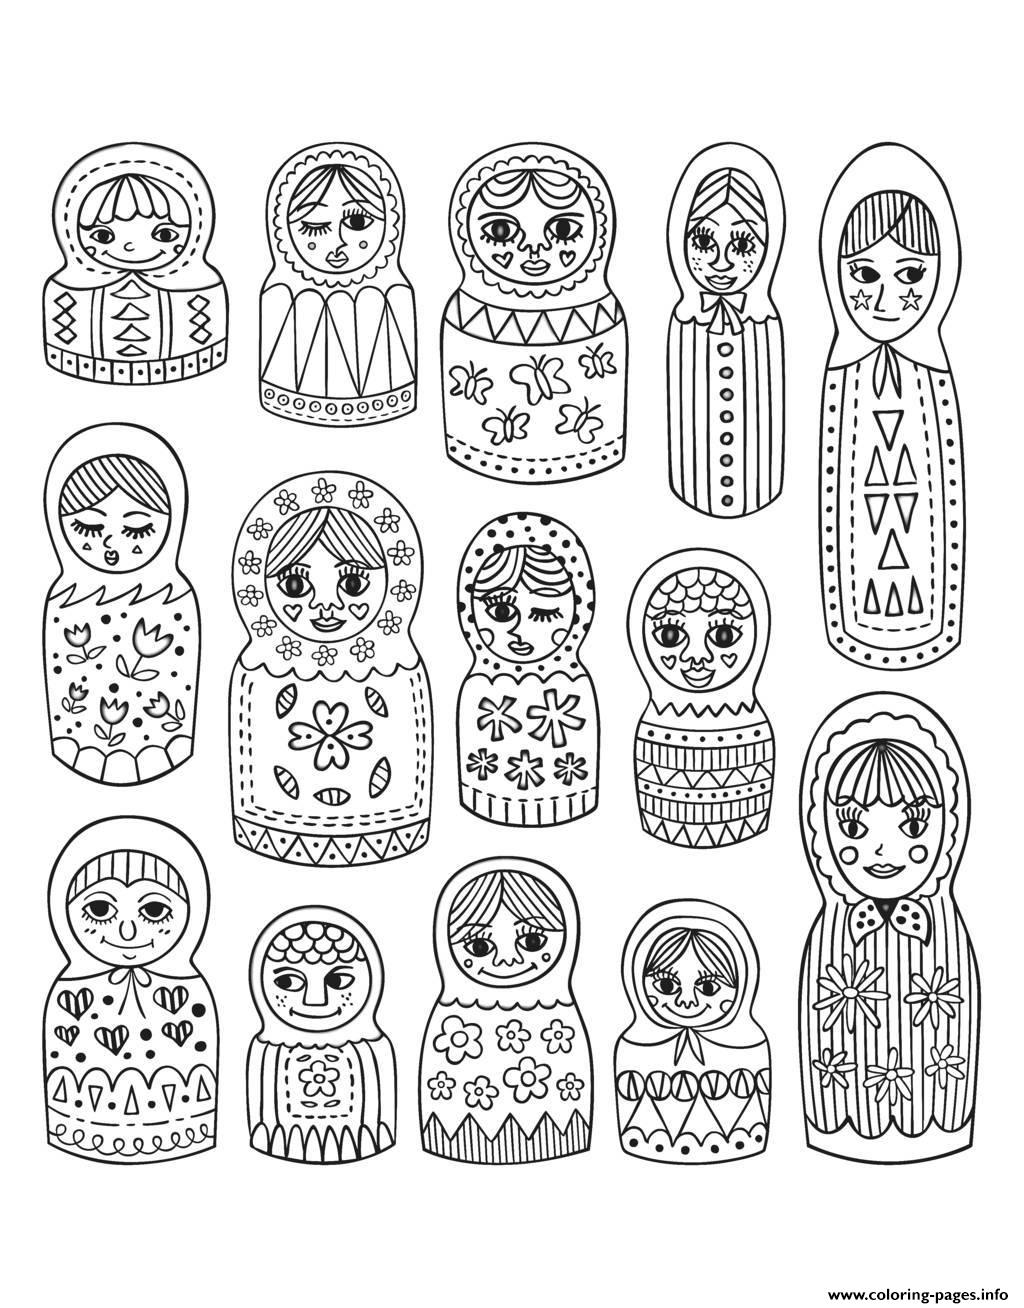 Adult Cute Russian Dolls coloring pages